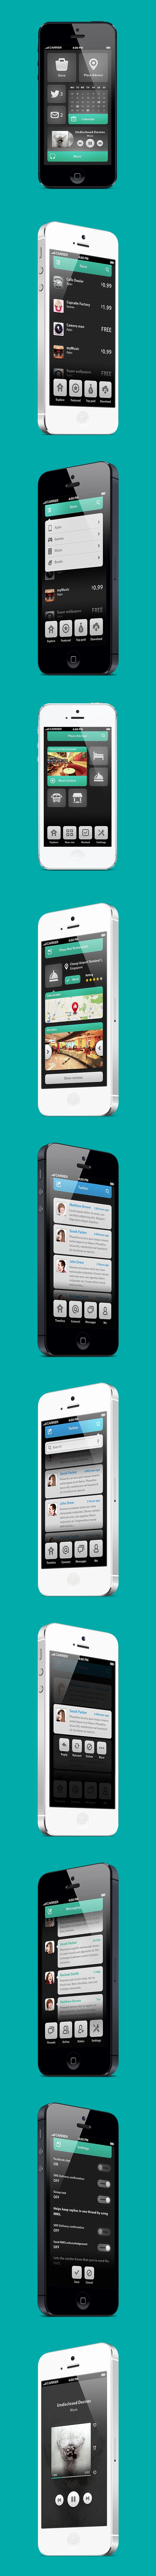 "Phone UI Retina - Natalie, via Behance *** "" The wonderful Design is what a user could ever want, How about a Sexy one, Strong and Cute, Smart and Gorgeous, as silky as a woman, We're introducing the most sexiest User Interface Design ever, meet Natalie and tell us what is sexy. "" by Ismail MESBAH"